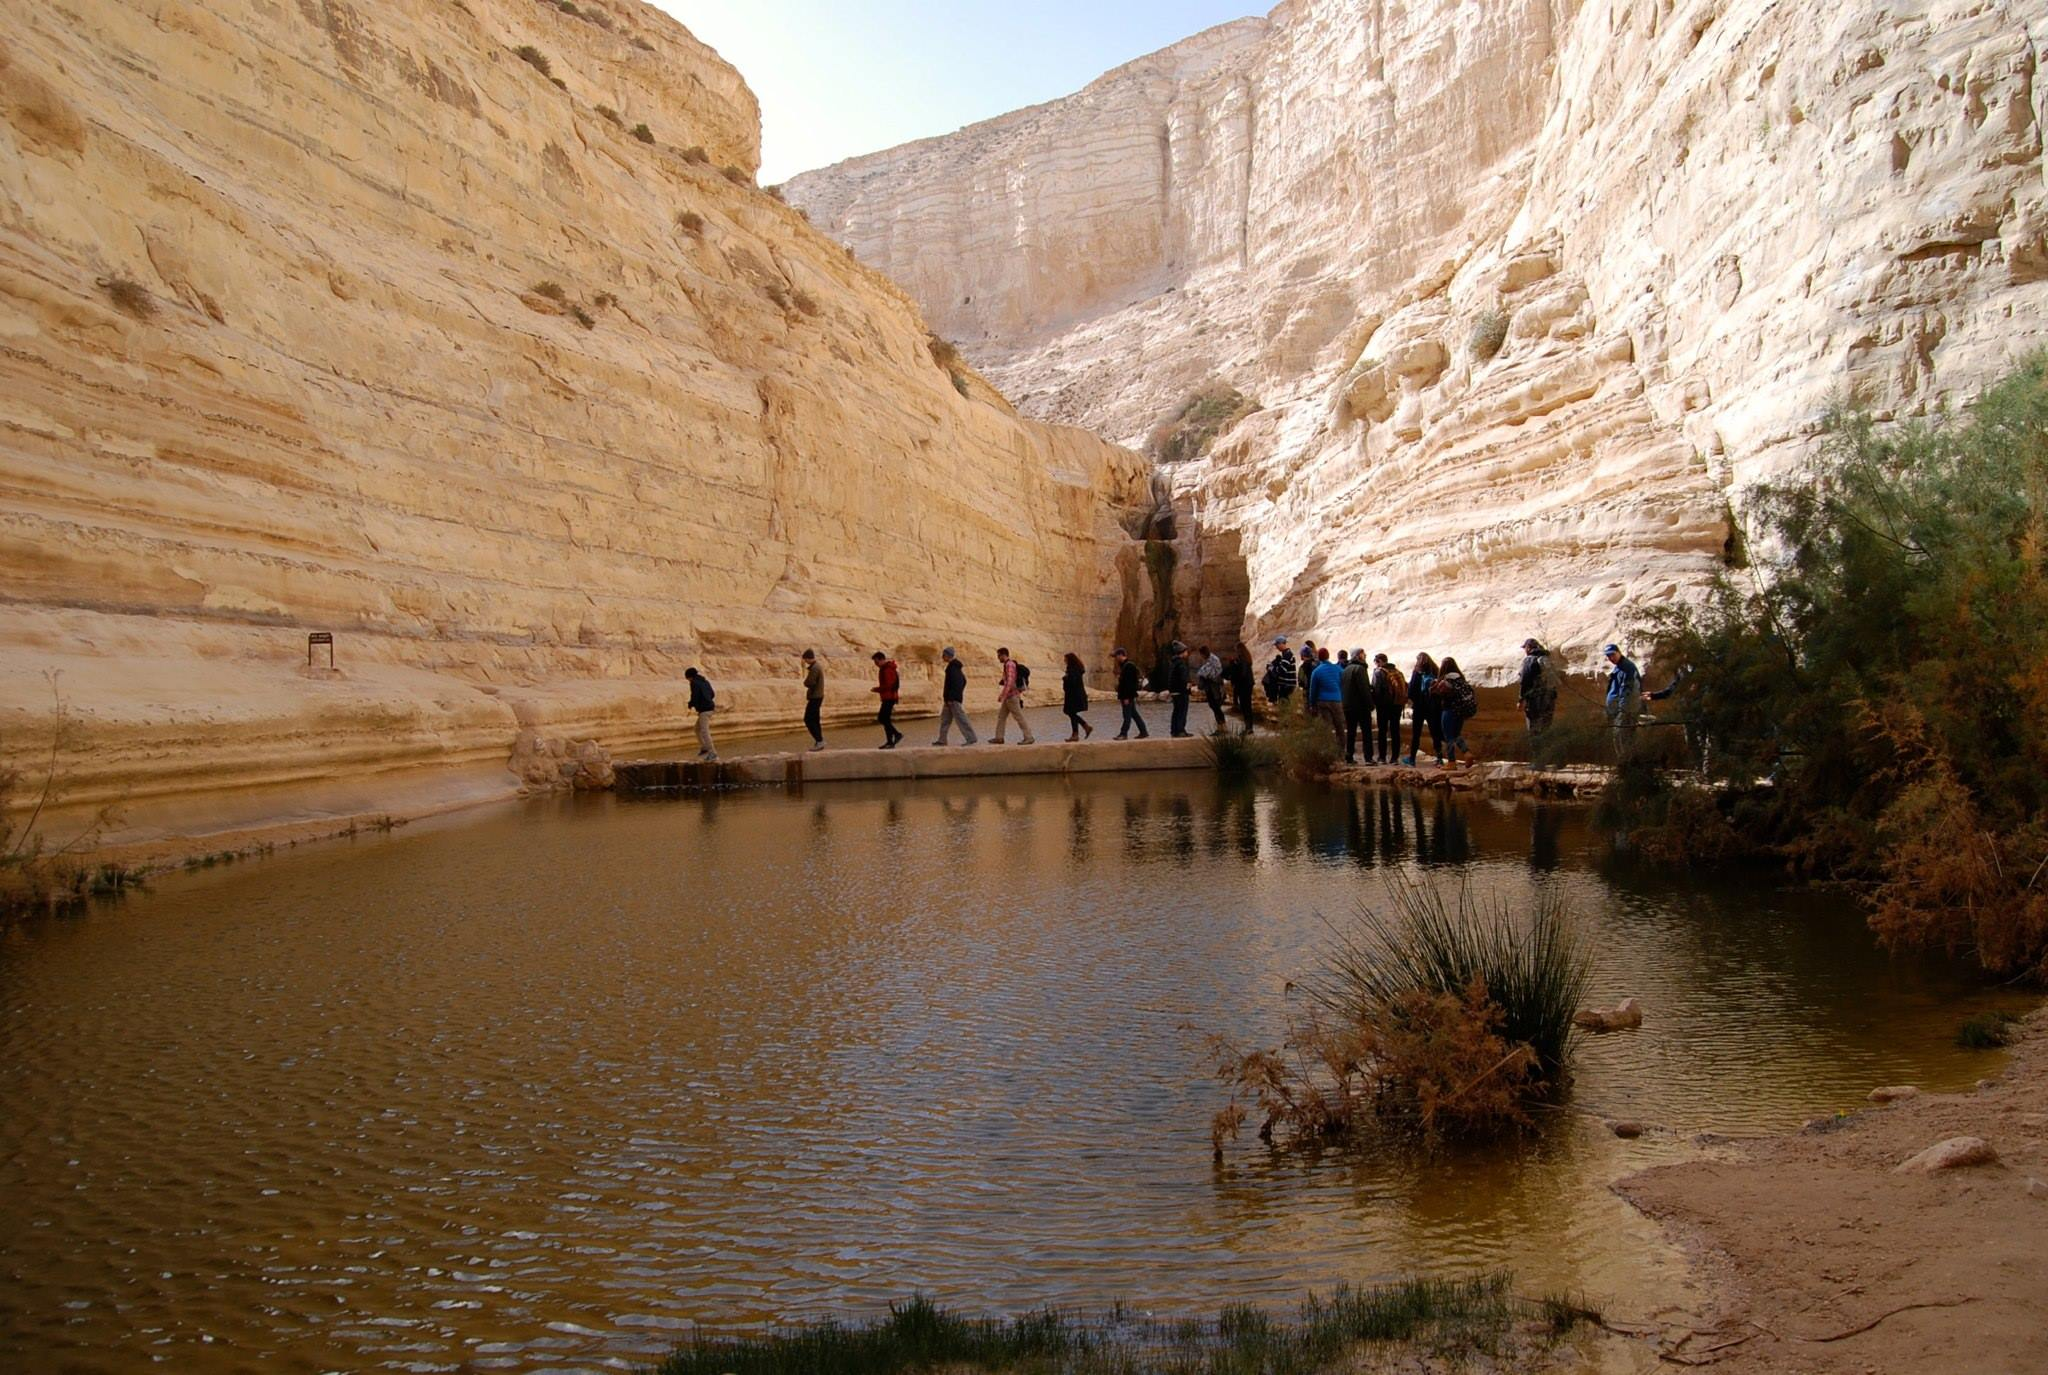 Crossing the Ein Avdat Oasis in the Negev Desert, Israel.